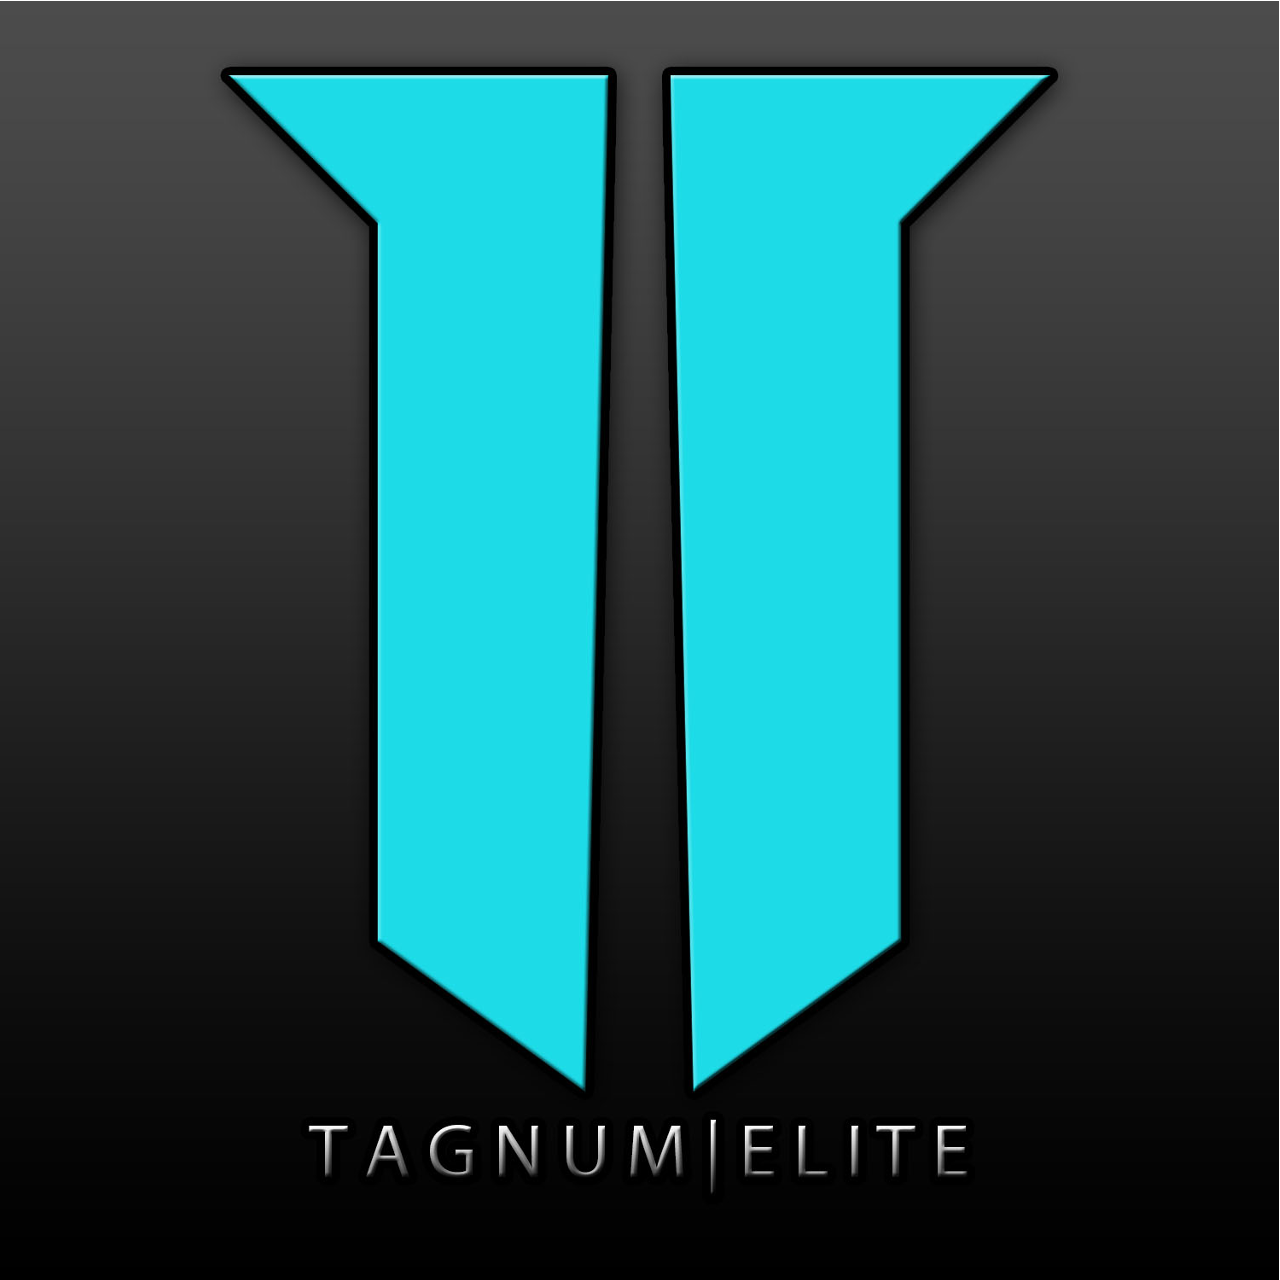 Avatar of TagnumElite